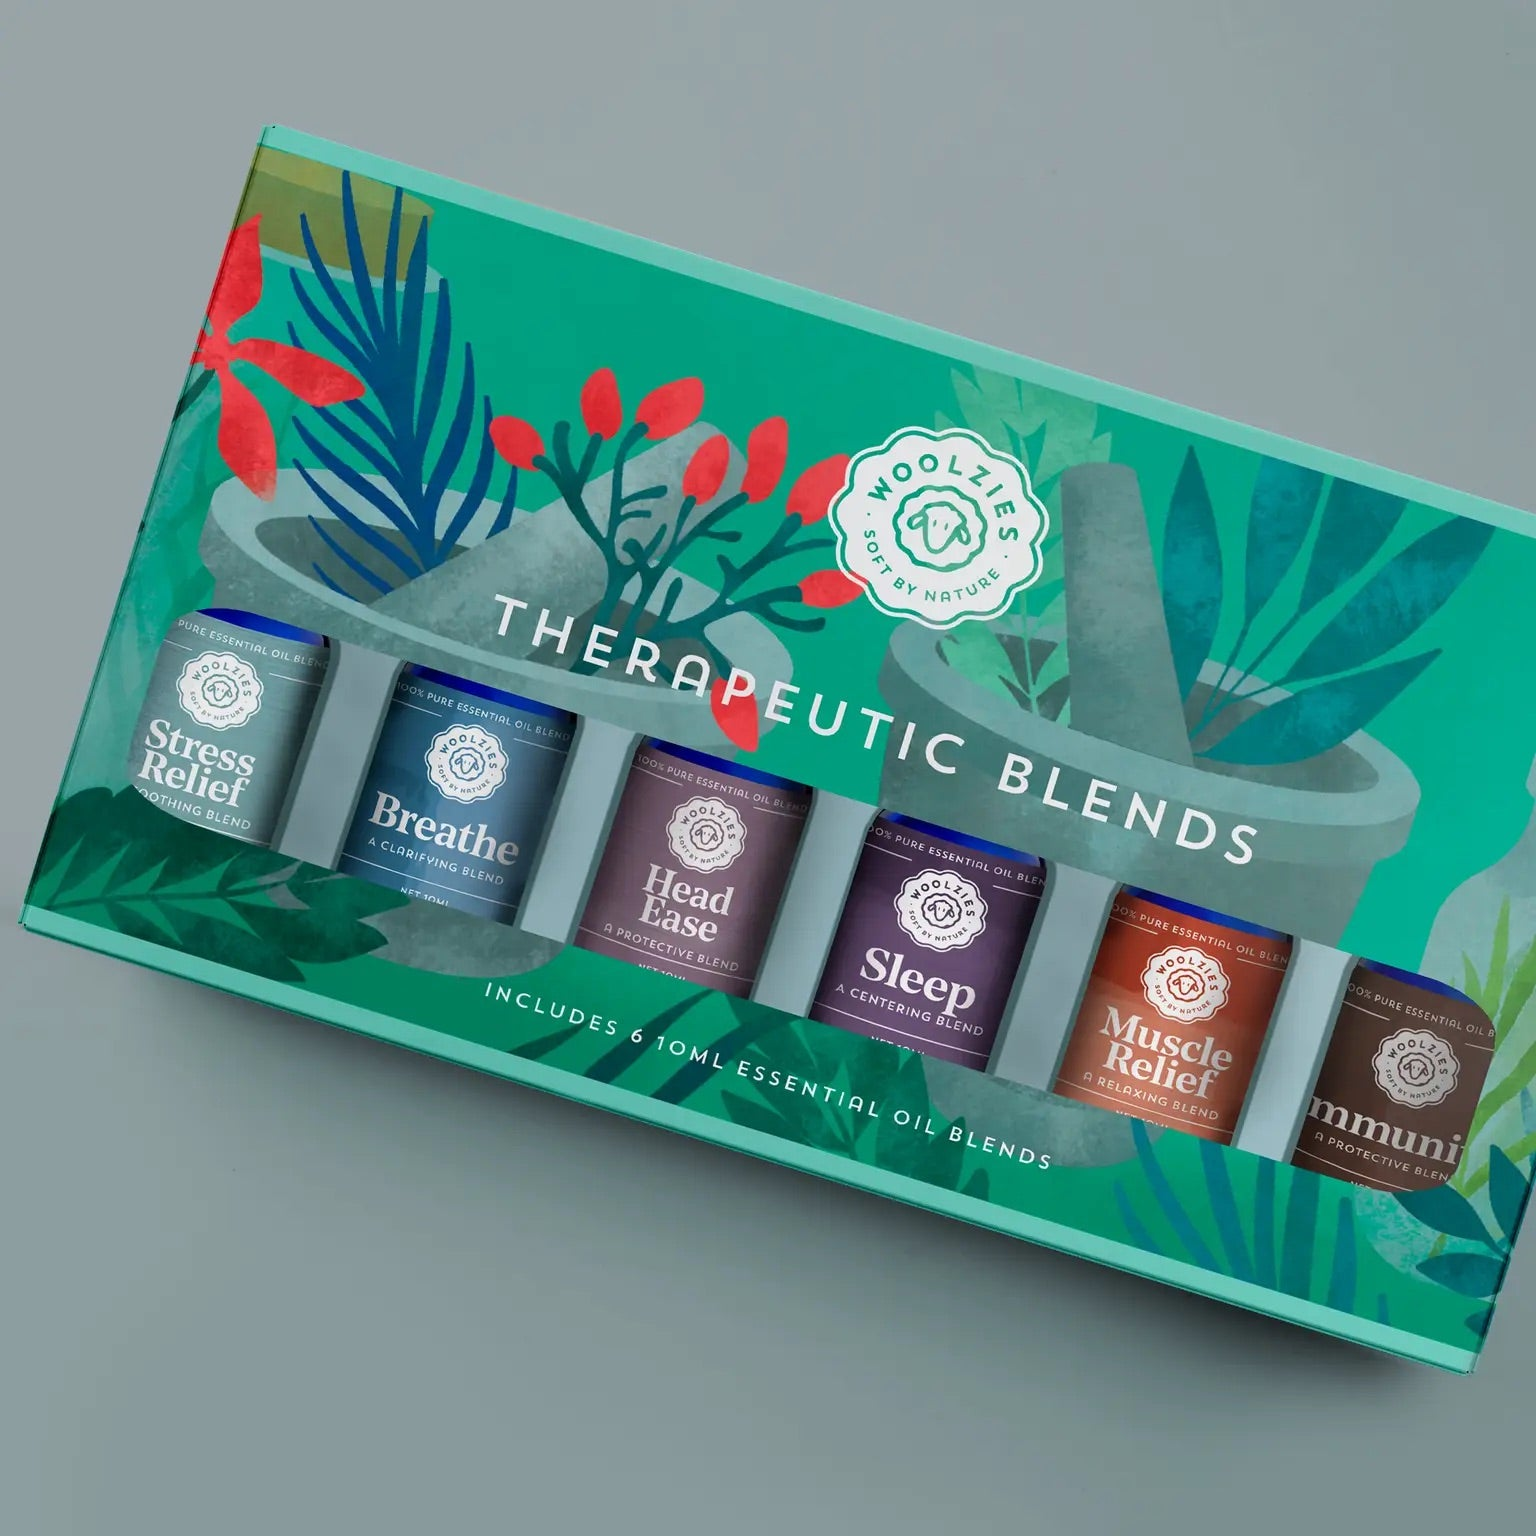 Aromatherapy: Blends Collection